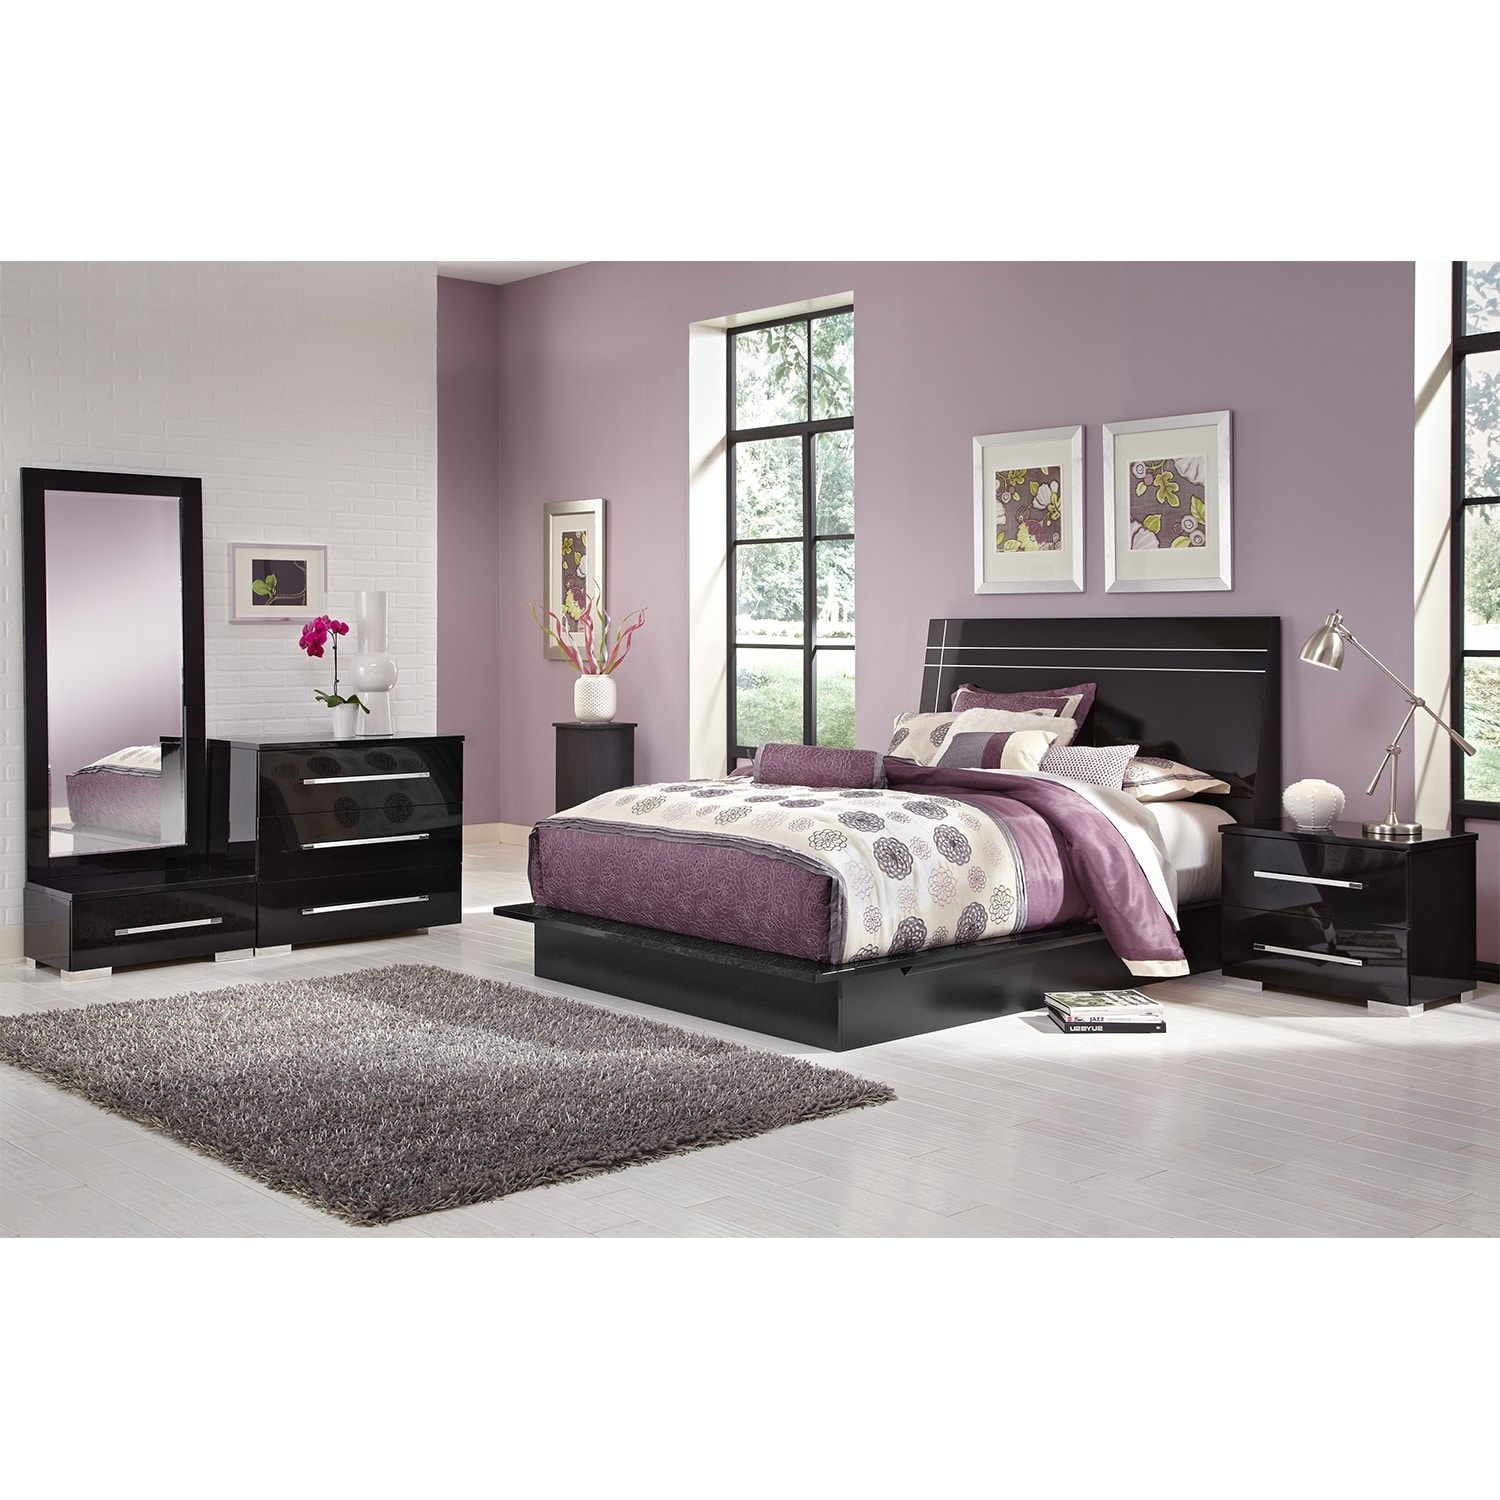 Bedroom Furniture - Dimora 6-Piece Queen Panel Bedroom Set - Black